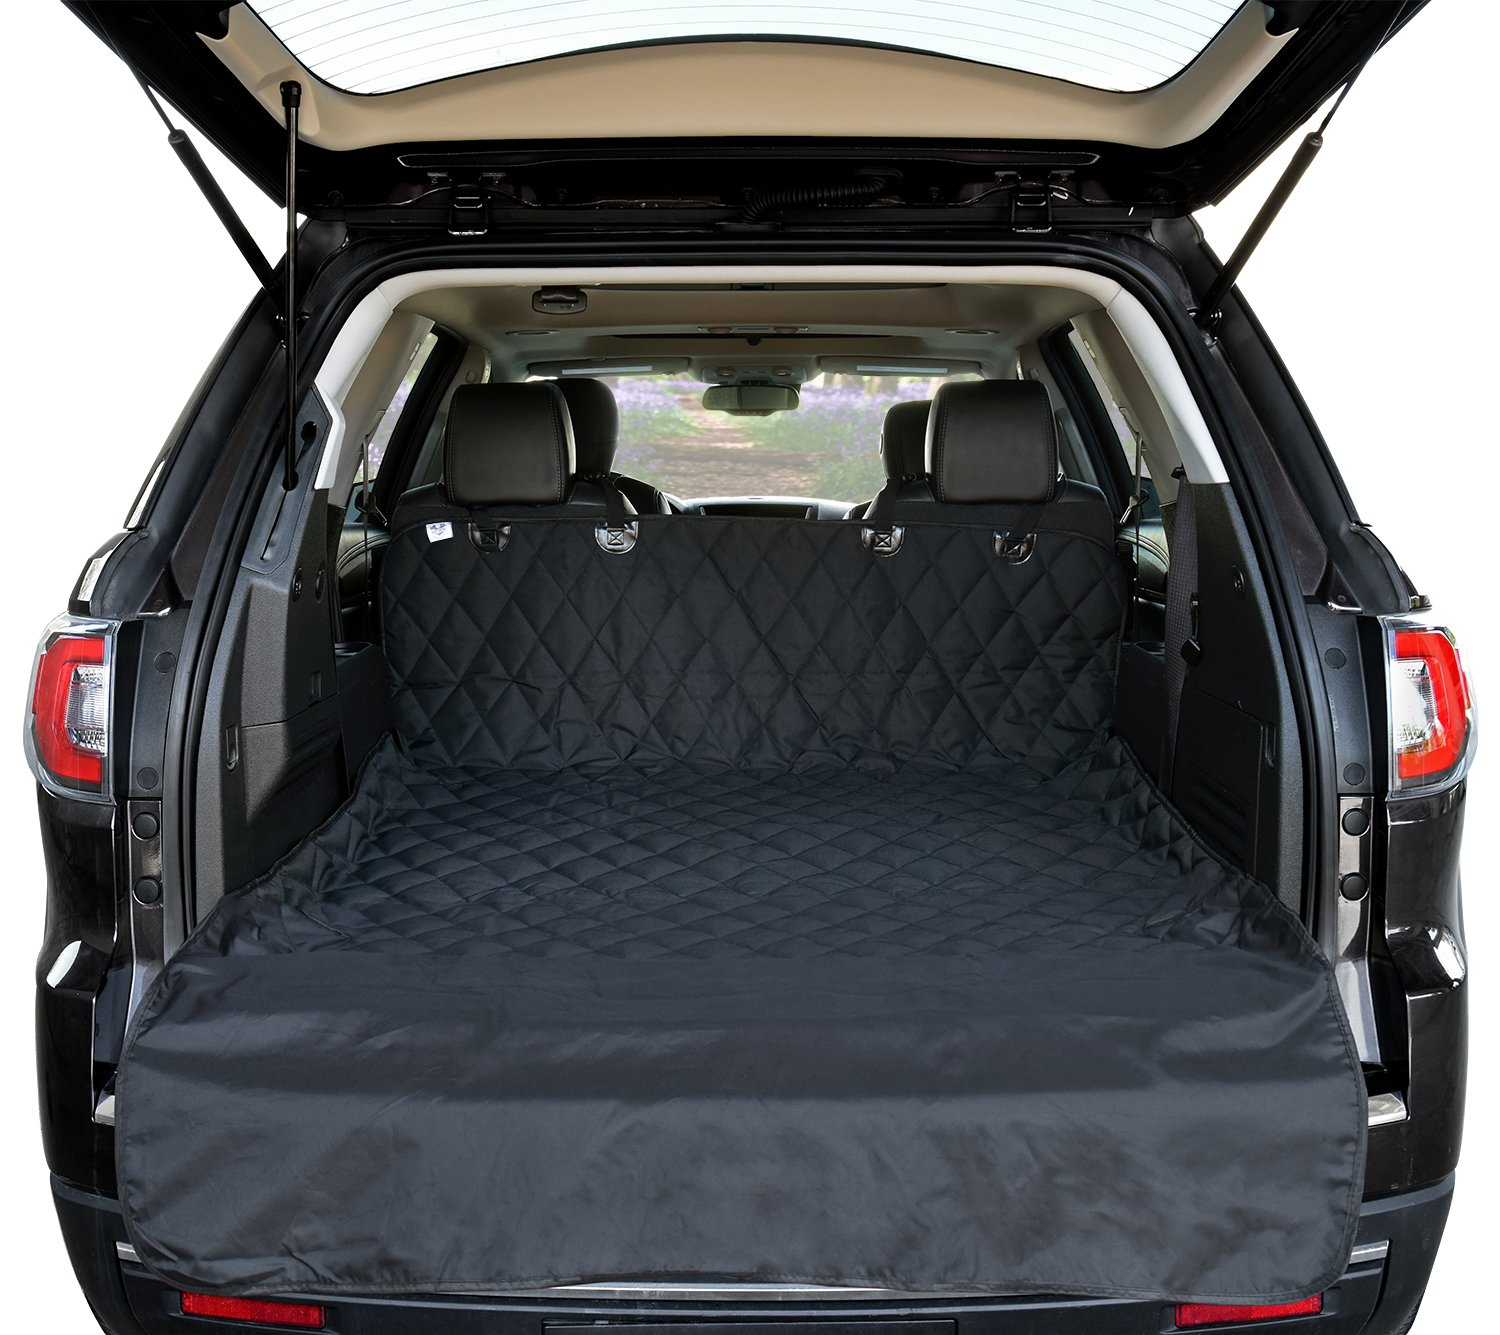 Arf Pets SUV Cargo Liner Cover for SUVs and Cars, Waterproof Material, Non Slip Backing, Extra Bumper Flap Protector, Large Size - Universal Fit by Arf Pets